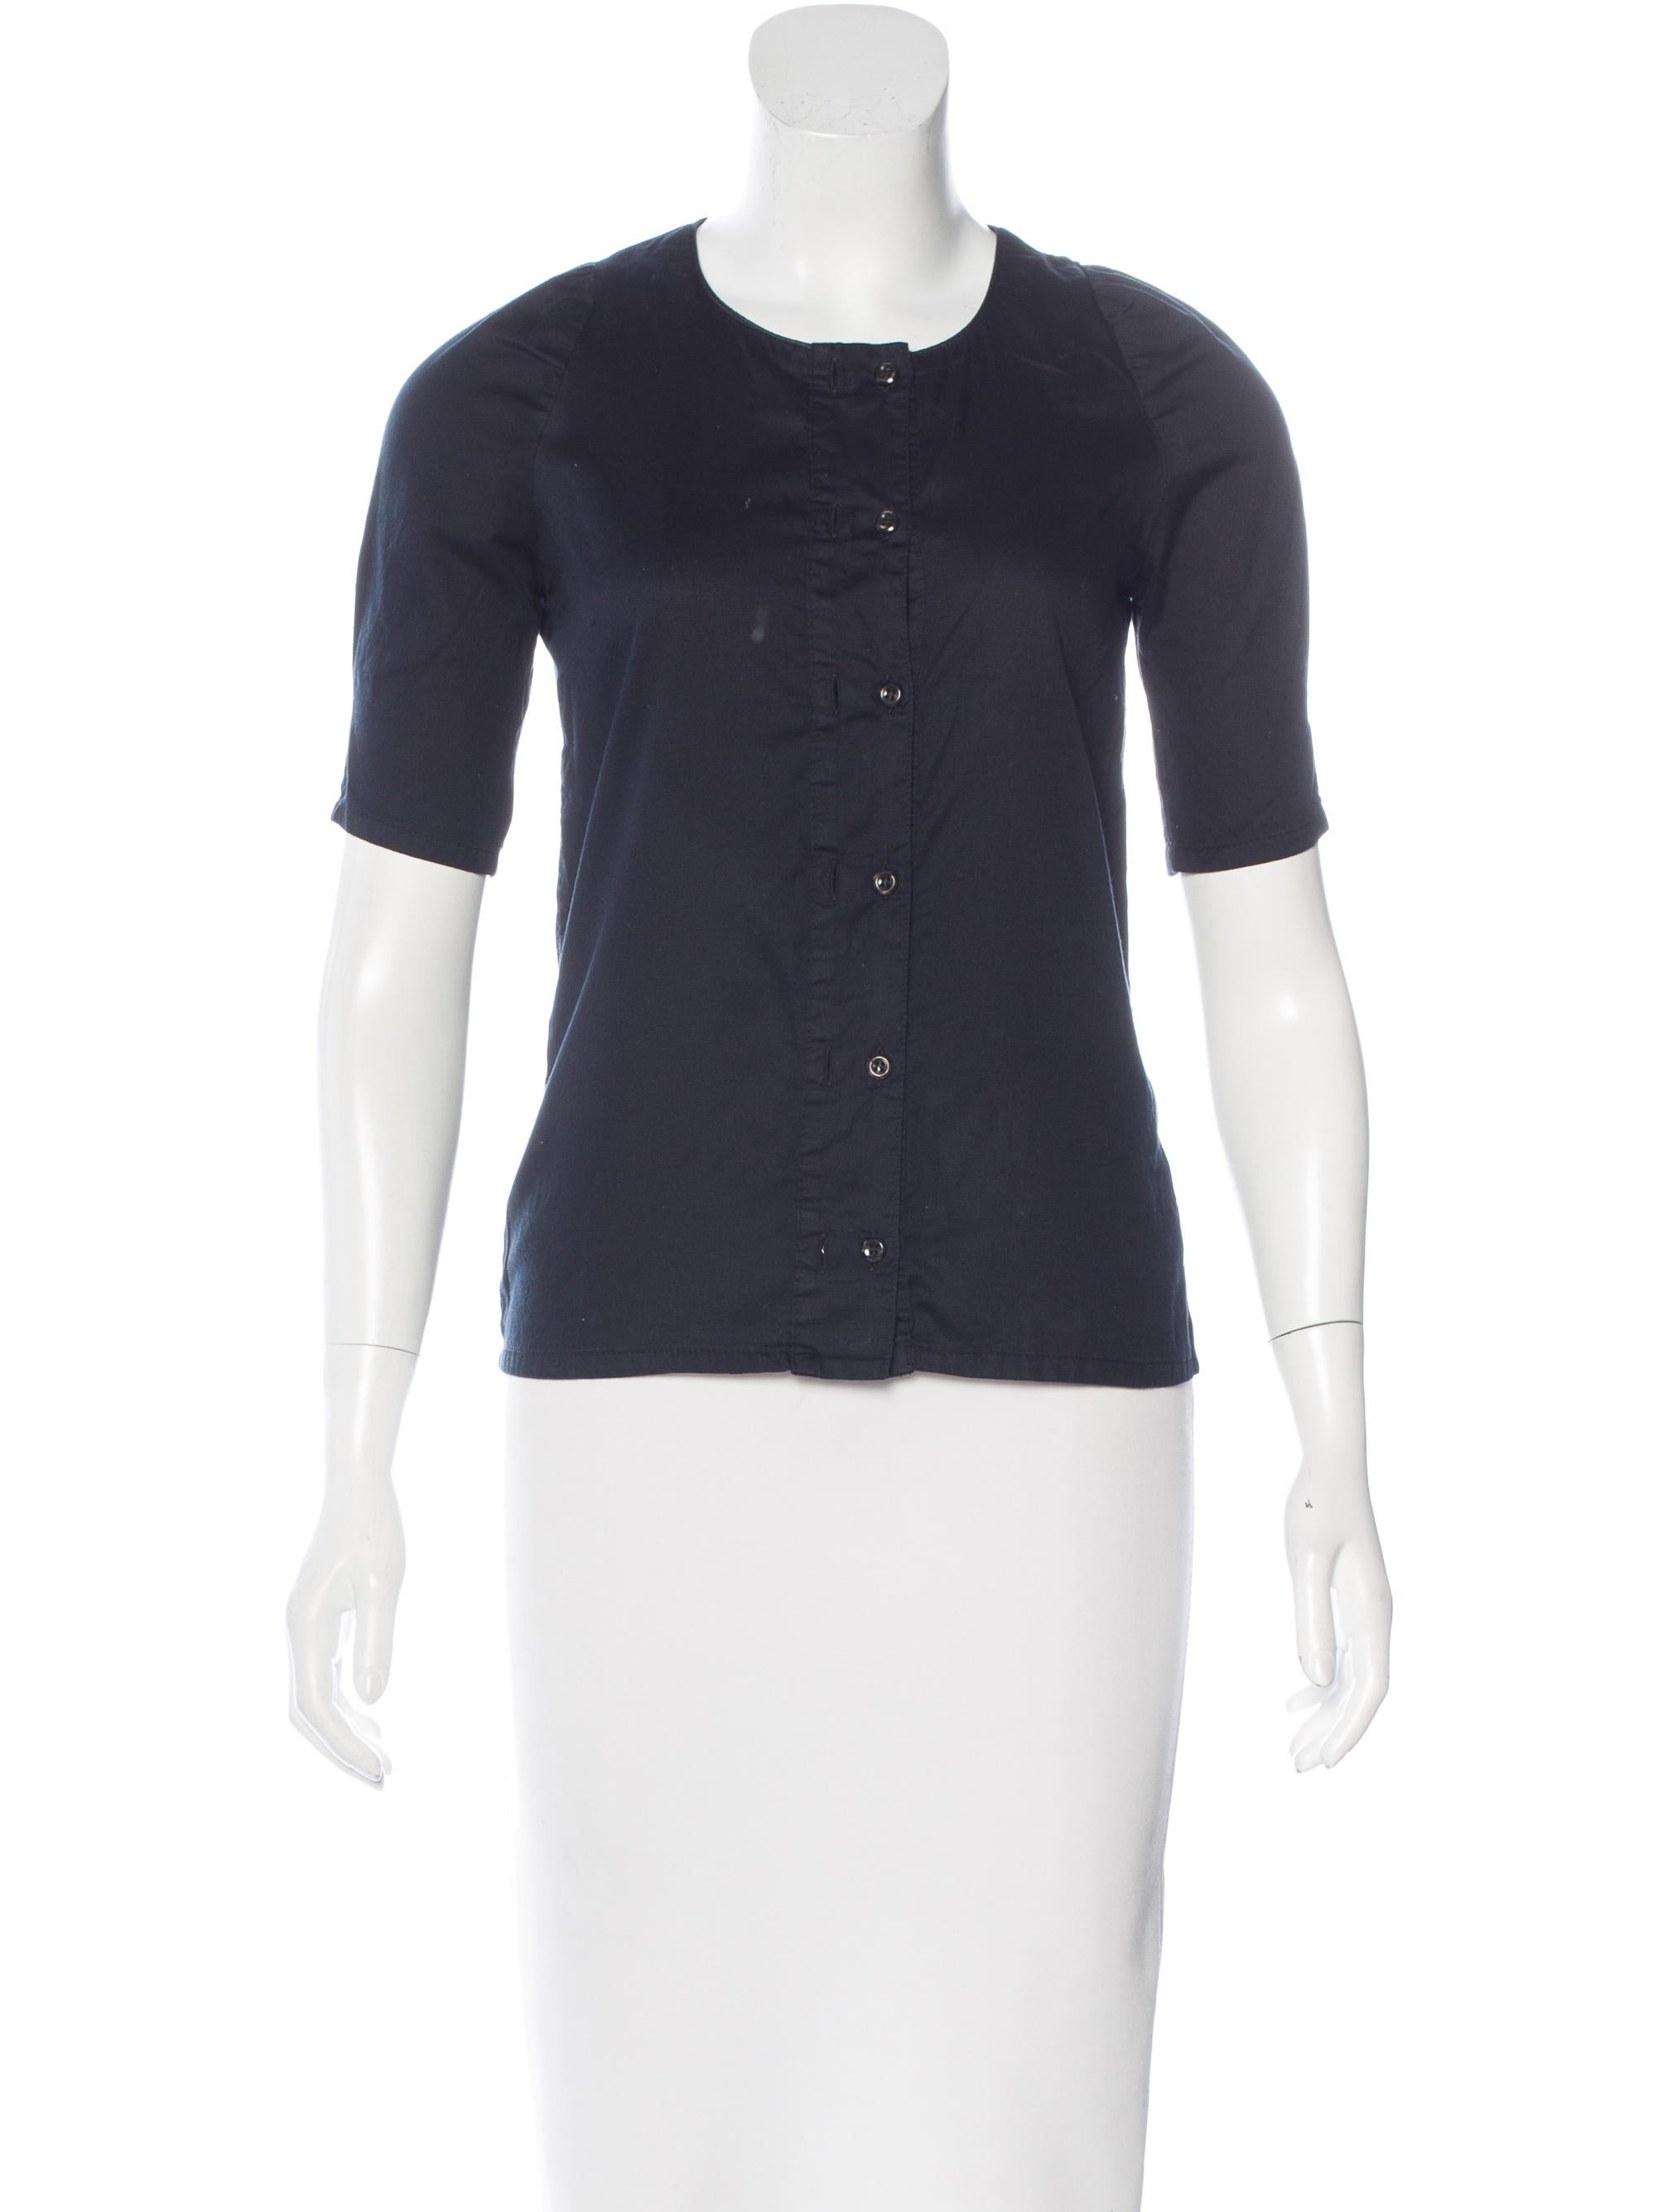 Rodebjer Fitted Button Up Top Clothing Wqz20228 The